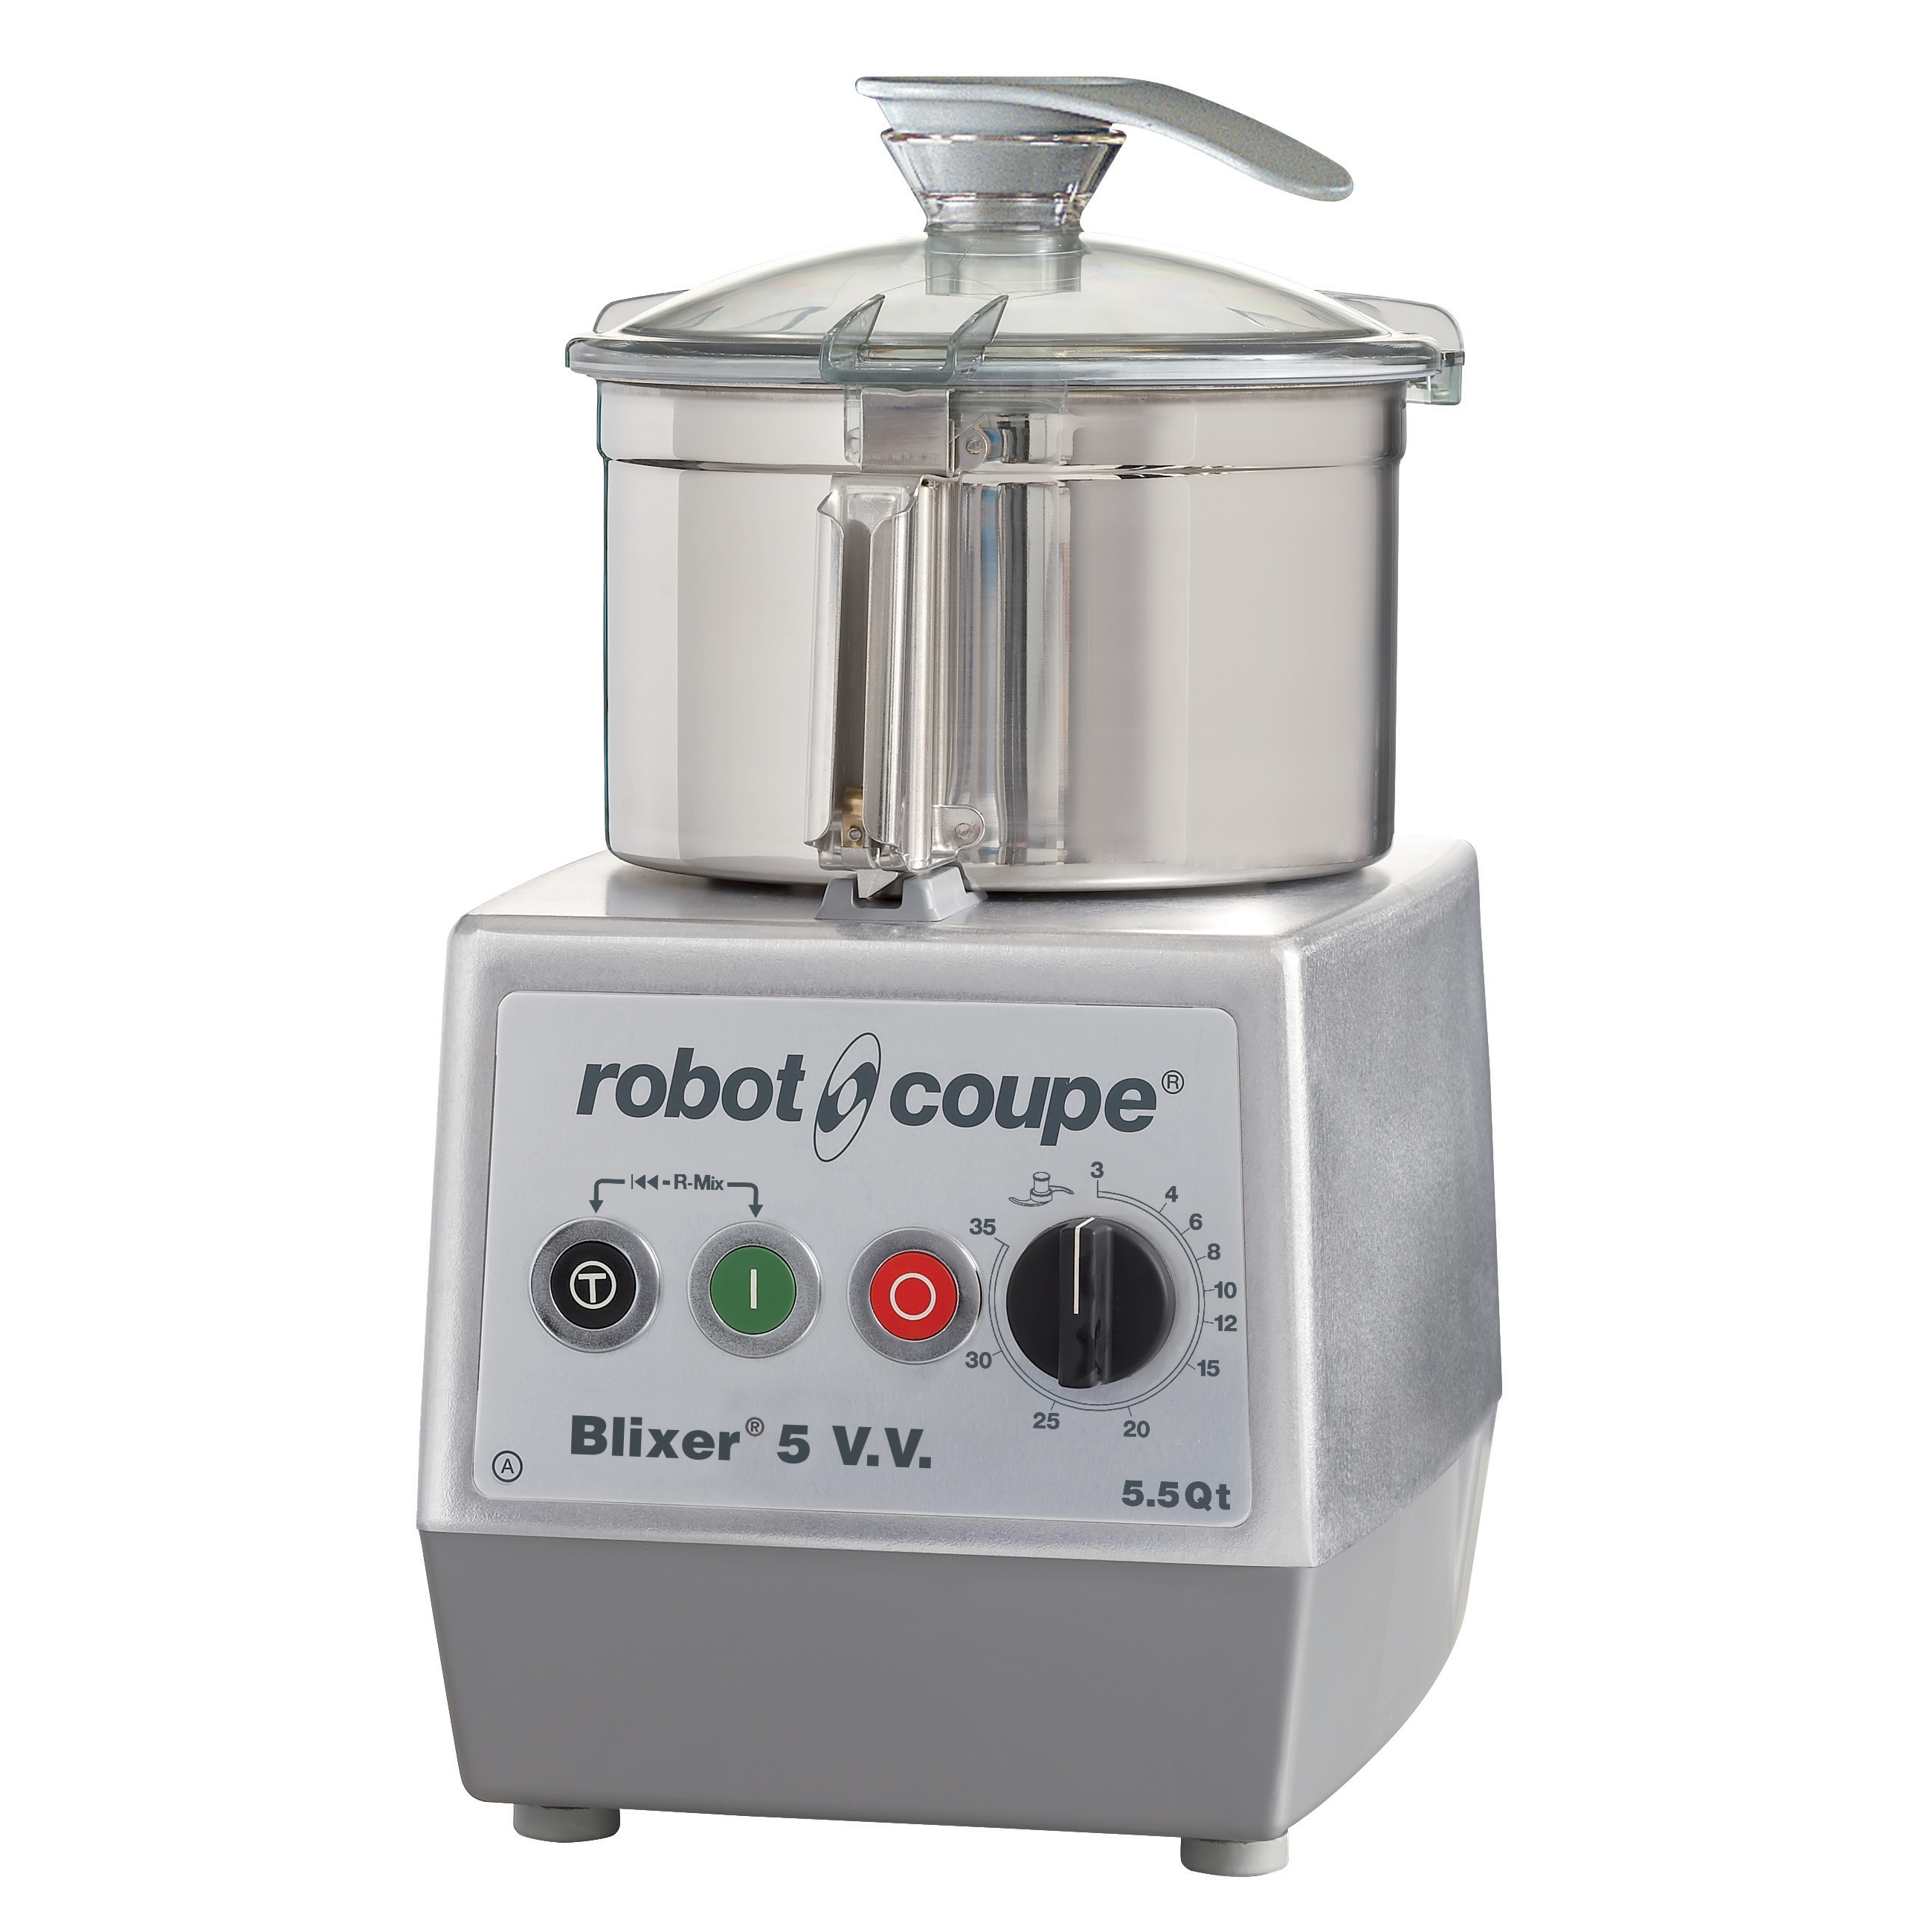 Robot Coupe BLIXER 5 VV food processor, benchtop / countertop